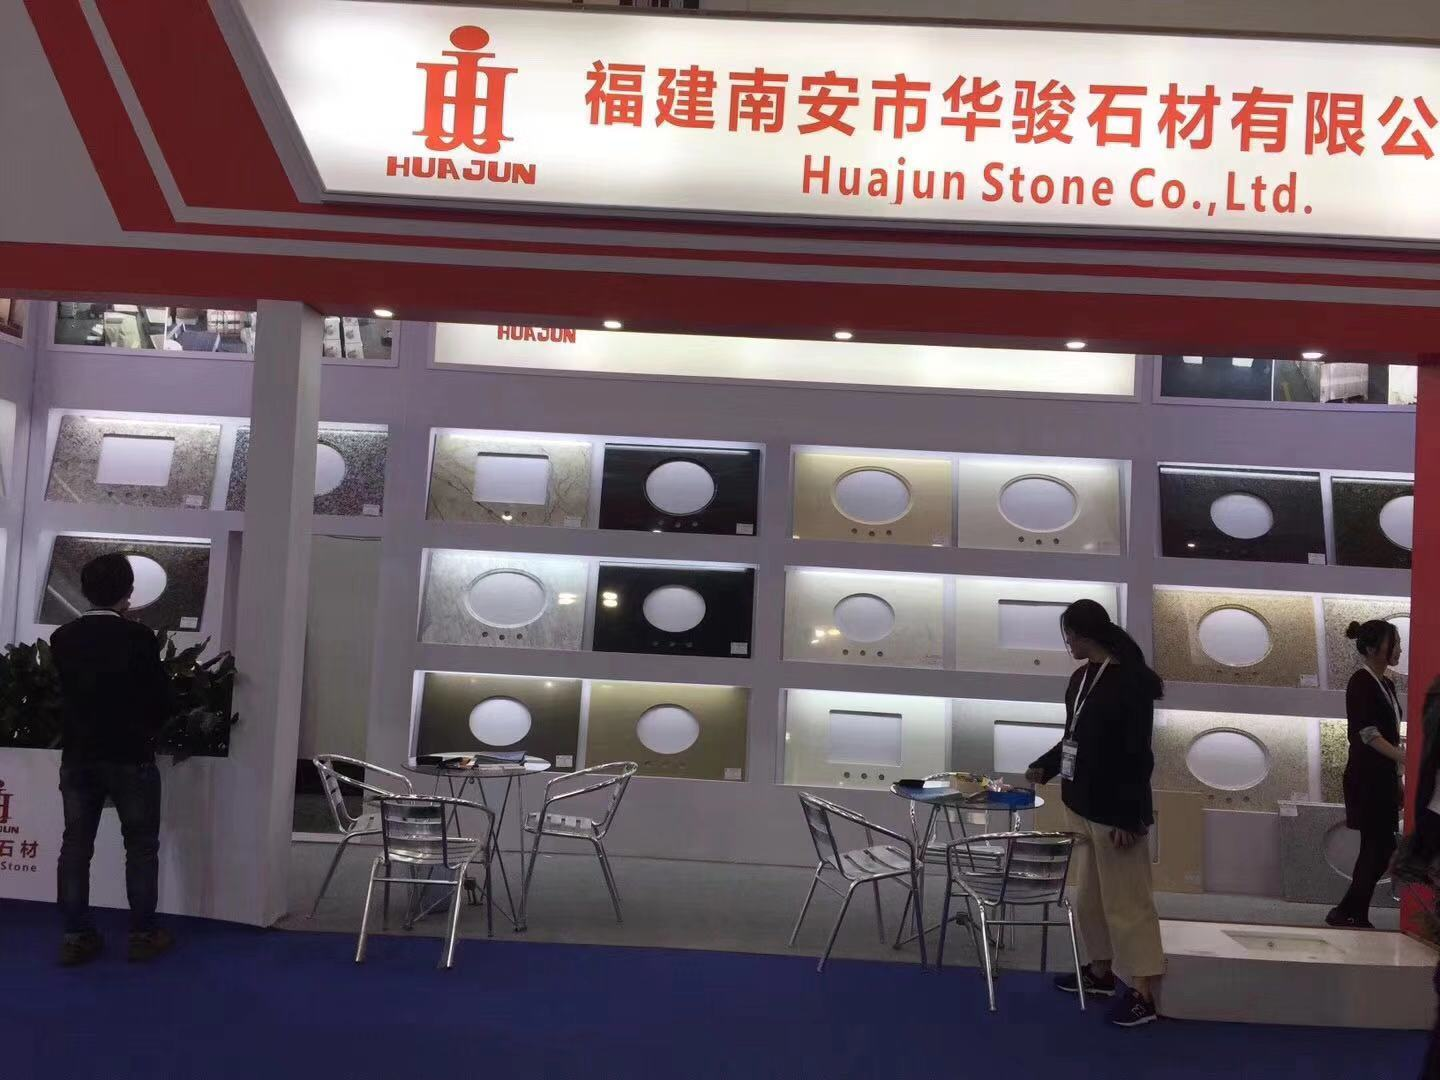 THE 19TH CHINA XIAMEEN INTERNATIONAL STONE FAIR